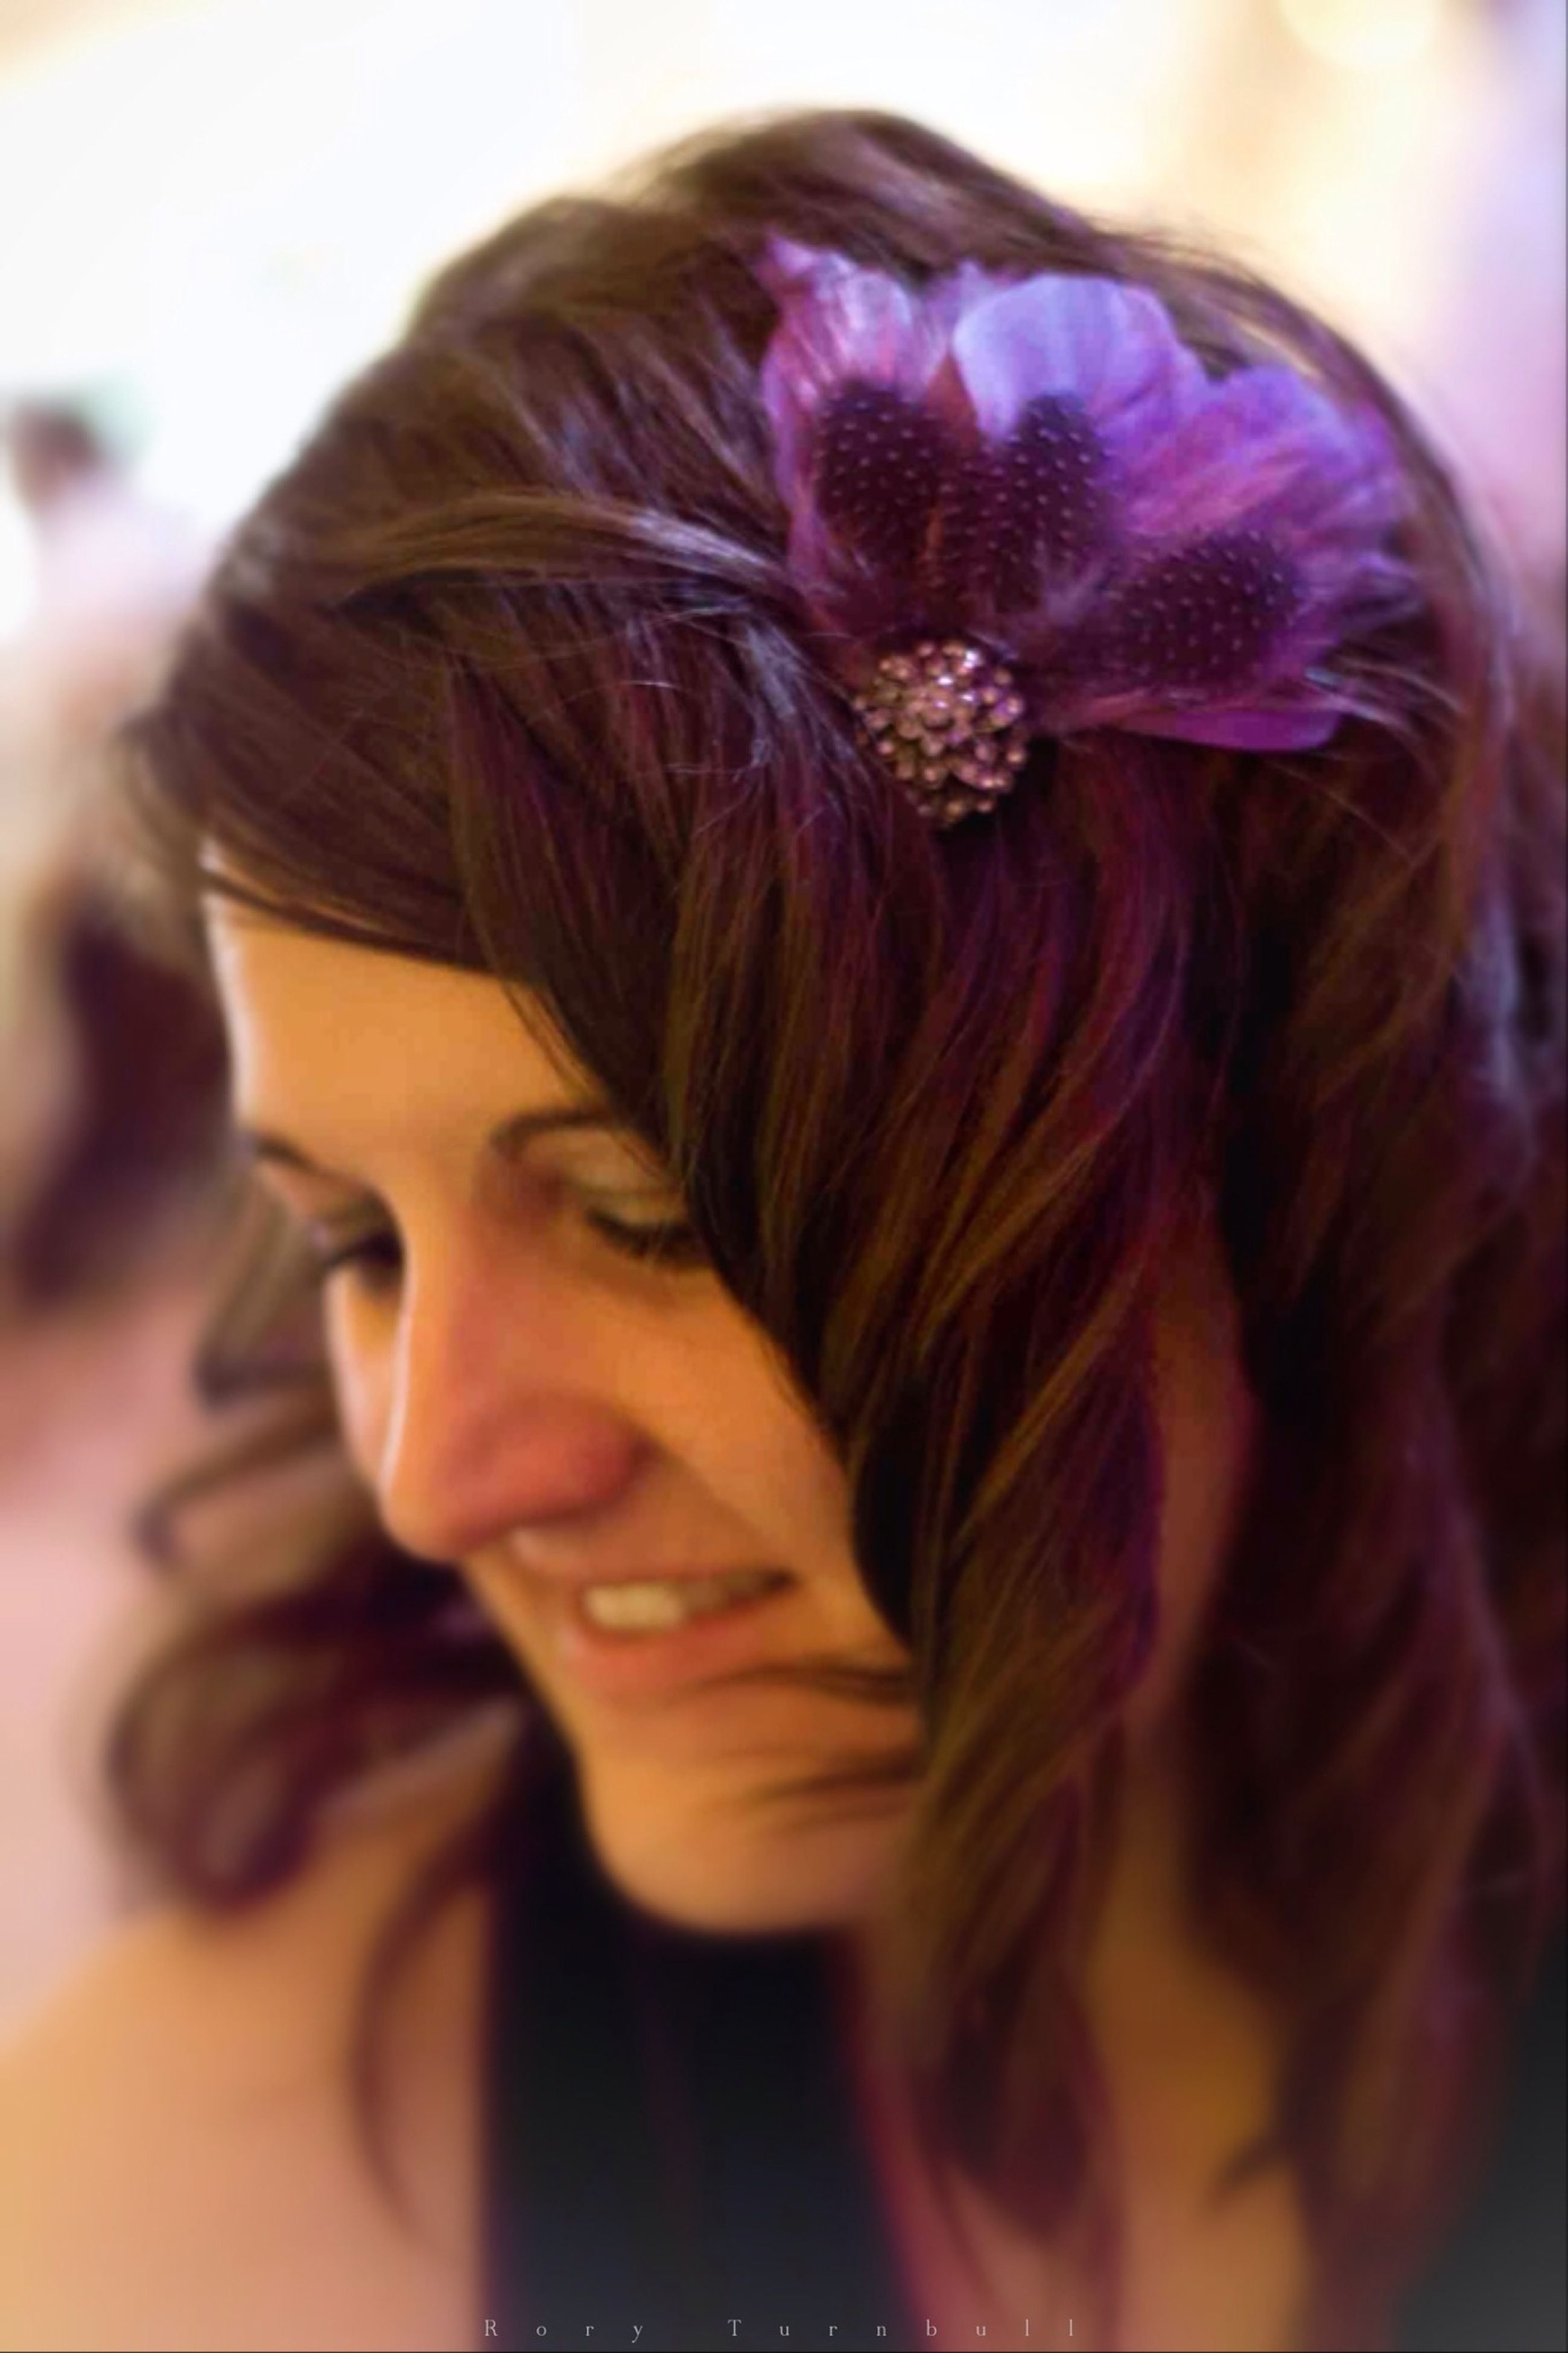 young adult, lifestyles, person, headshot, leisure activity, young women, long hair, looking at camera, focus on foreground, front view, portrait, indoors, smiling, casual clothing, close-up, head and shoulders, brown hair